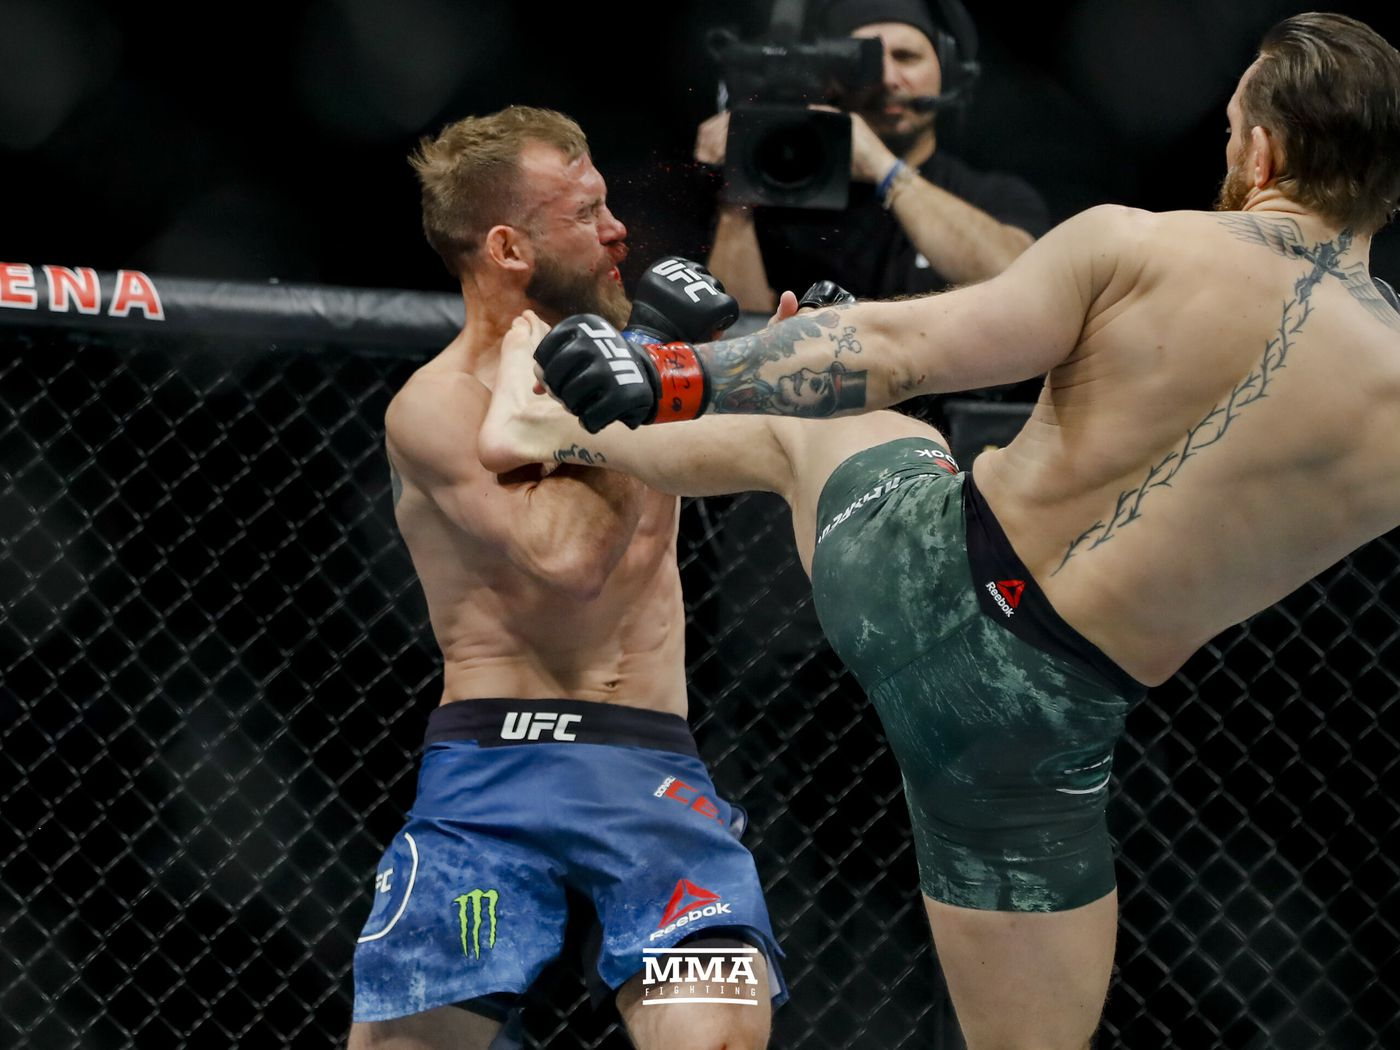 UFC 246 in Tweets: Pros react to Conor McGregor's knockout win over Donald Cerrone - MMA Fighting